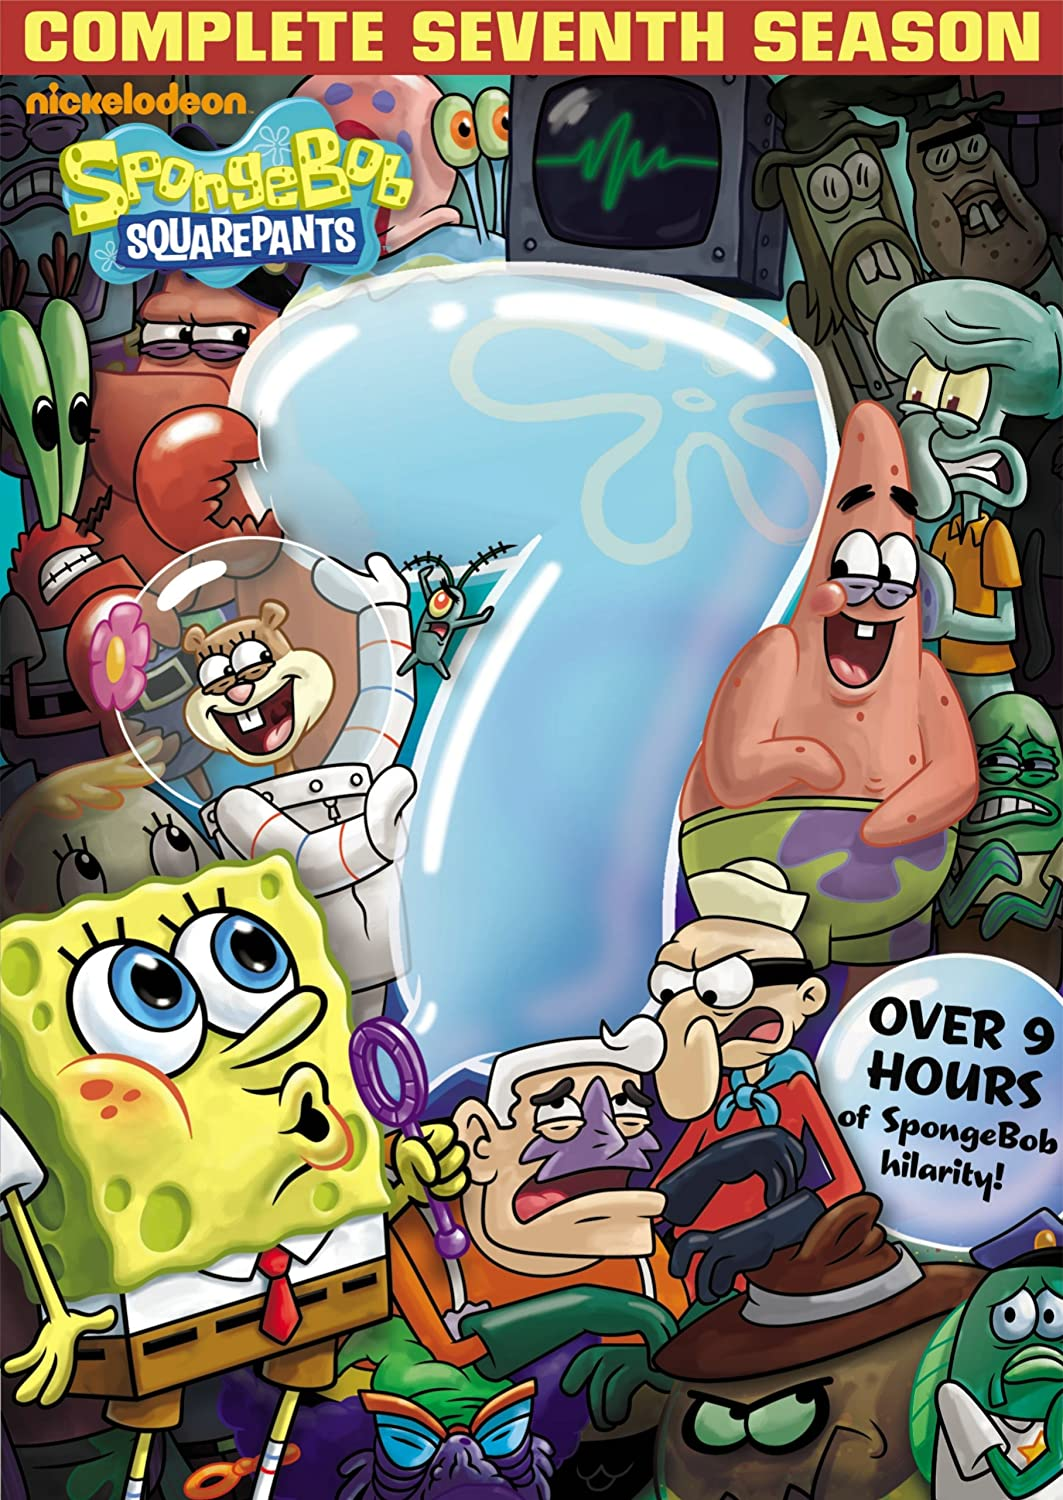 amazon com spongebob squarepants season 7 spongebob squarepants